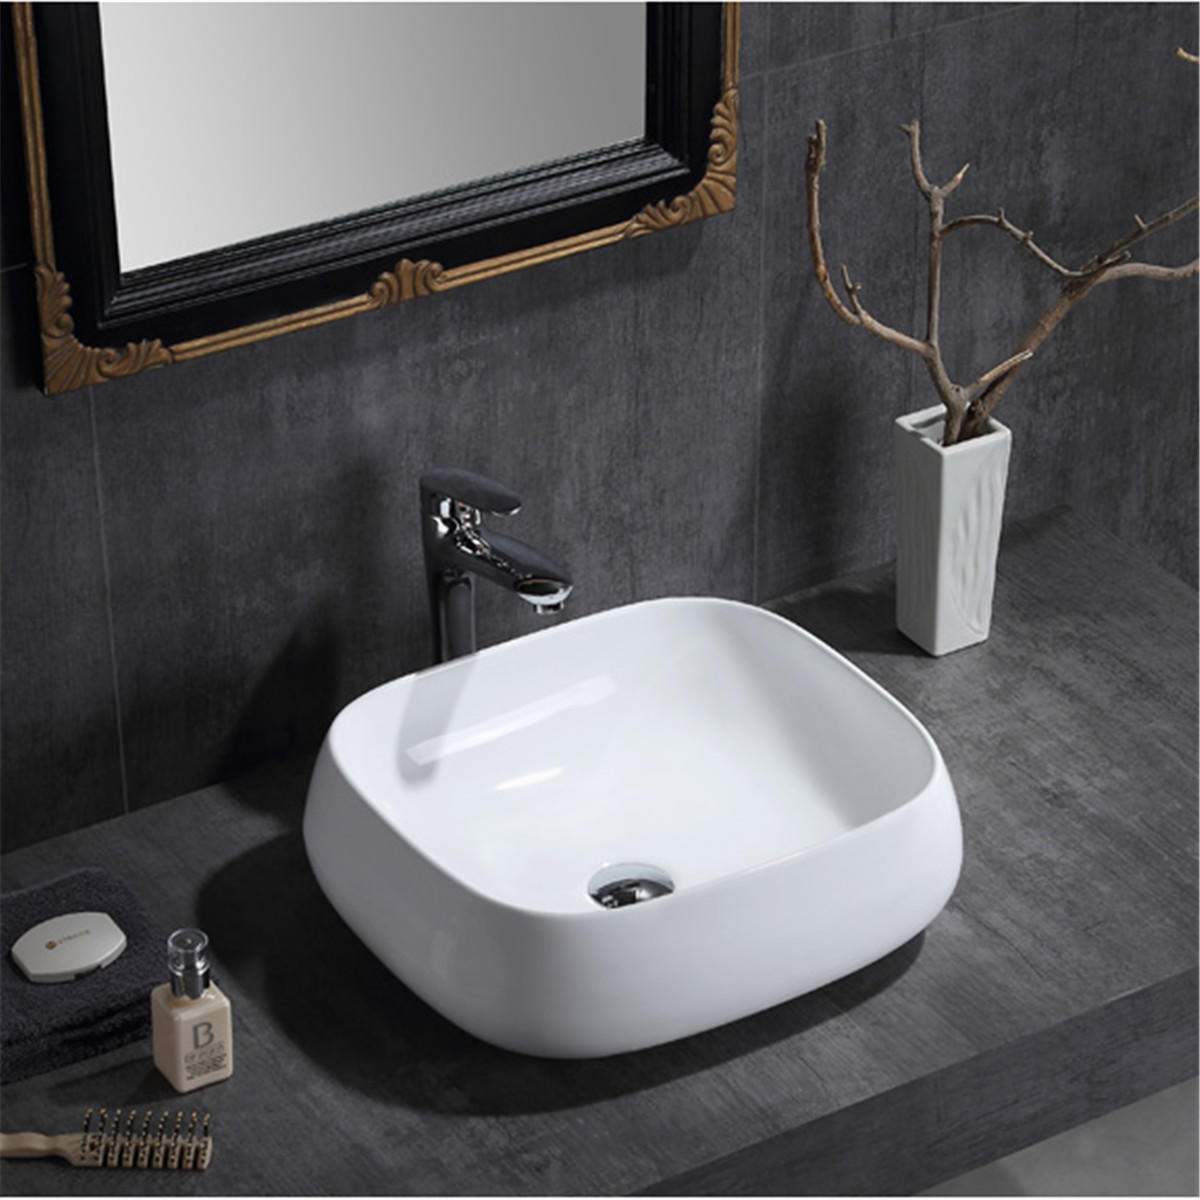 The white wash sinks & Art Basins manufacture from China , produce to wholesalers